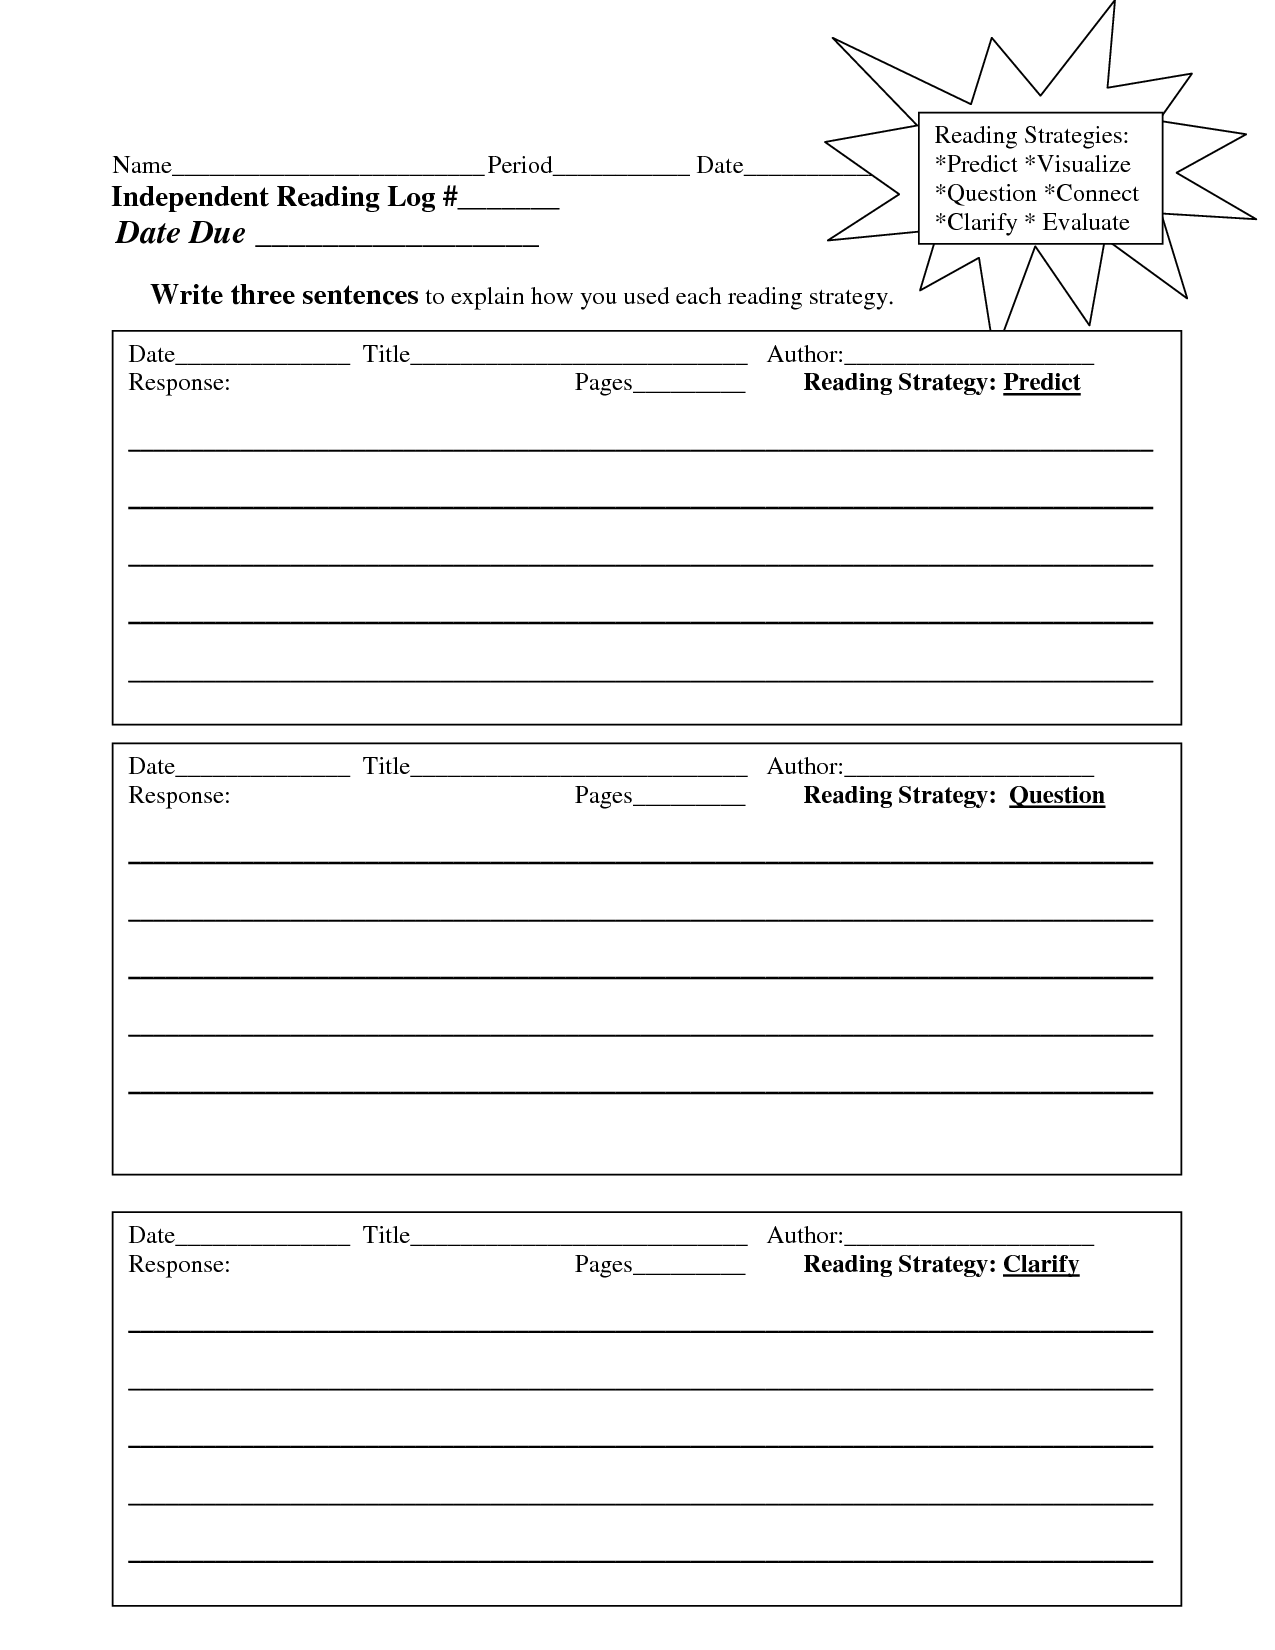 Daily Reading Log Template | Education | Pinterest | Reading logs ...